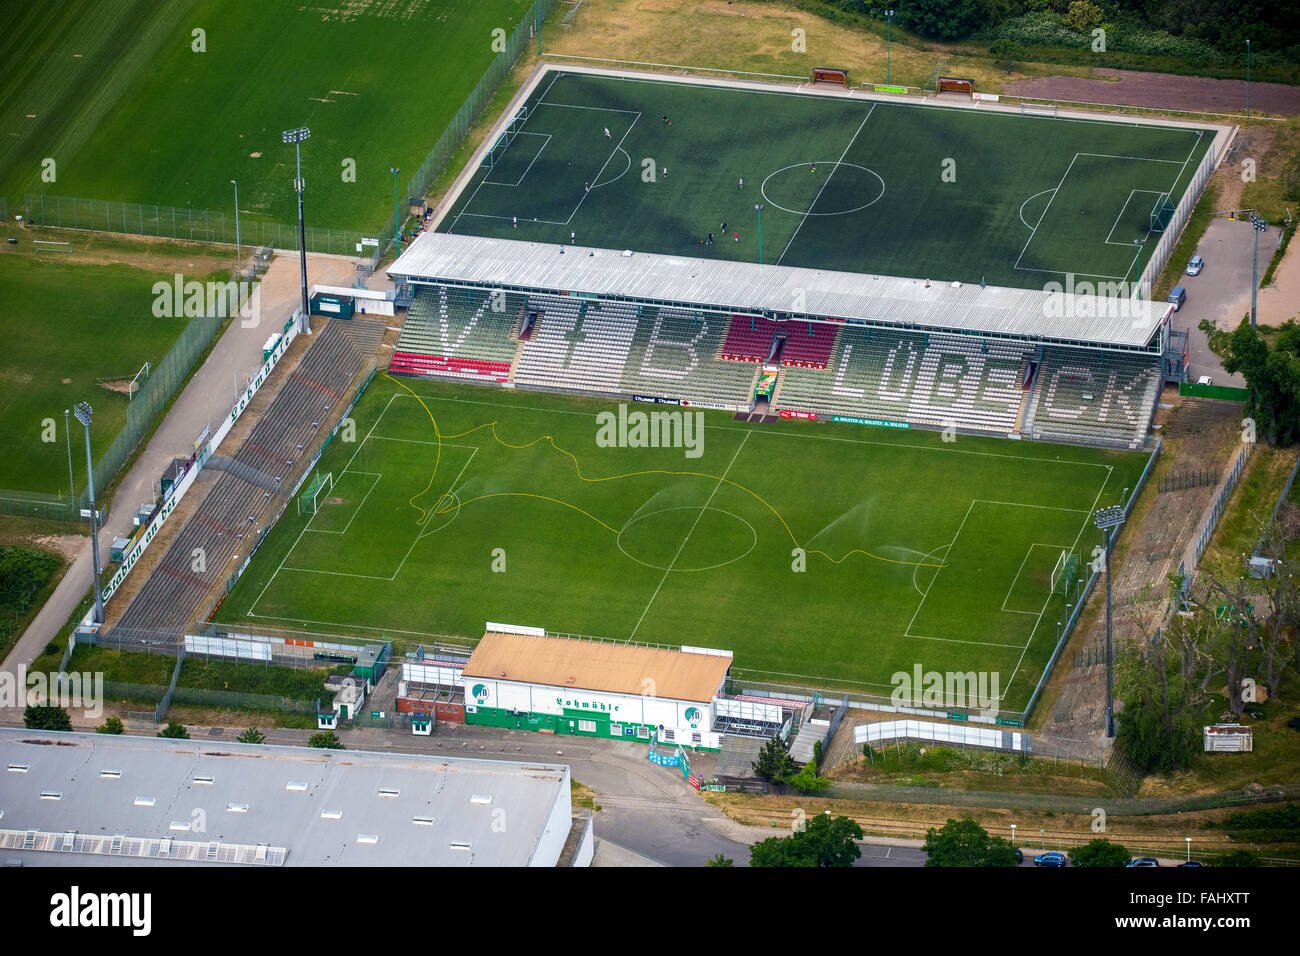 Aerial view, Lohmühle Stadium, VfB Lübeck football club, 2.Bundesliga, Stadium Lohmühle, football stadium, Lübeck, Stock Photo